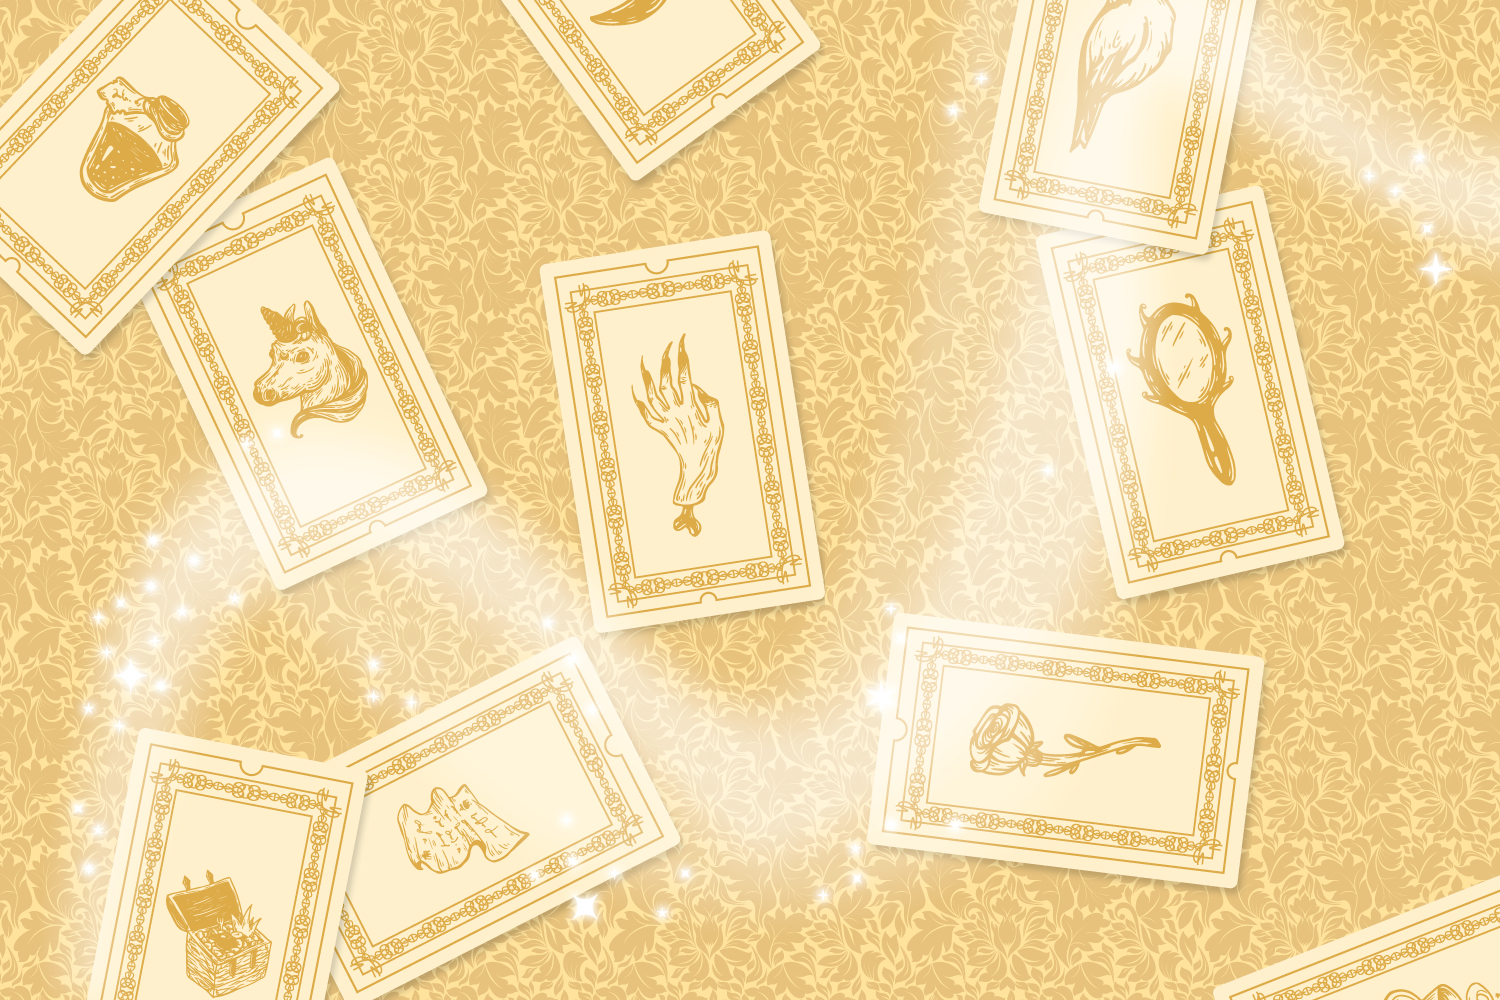 Illustrated fantastical cards swirl on a golden background